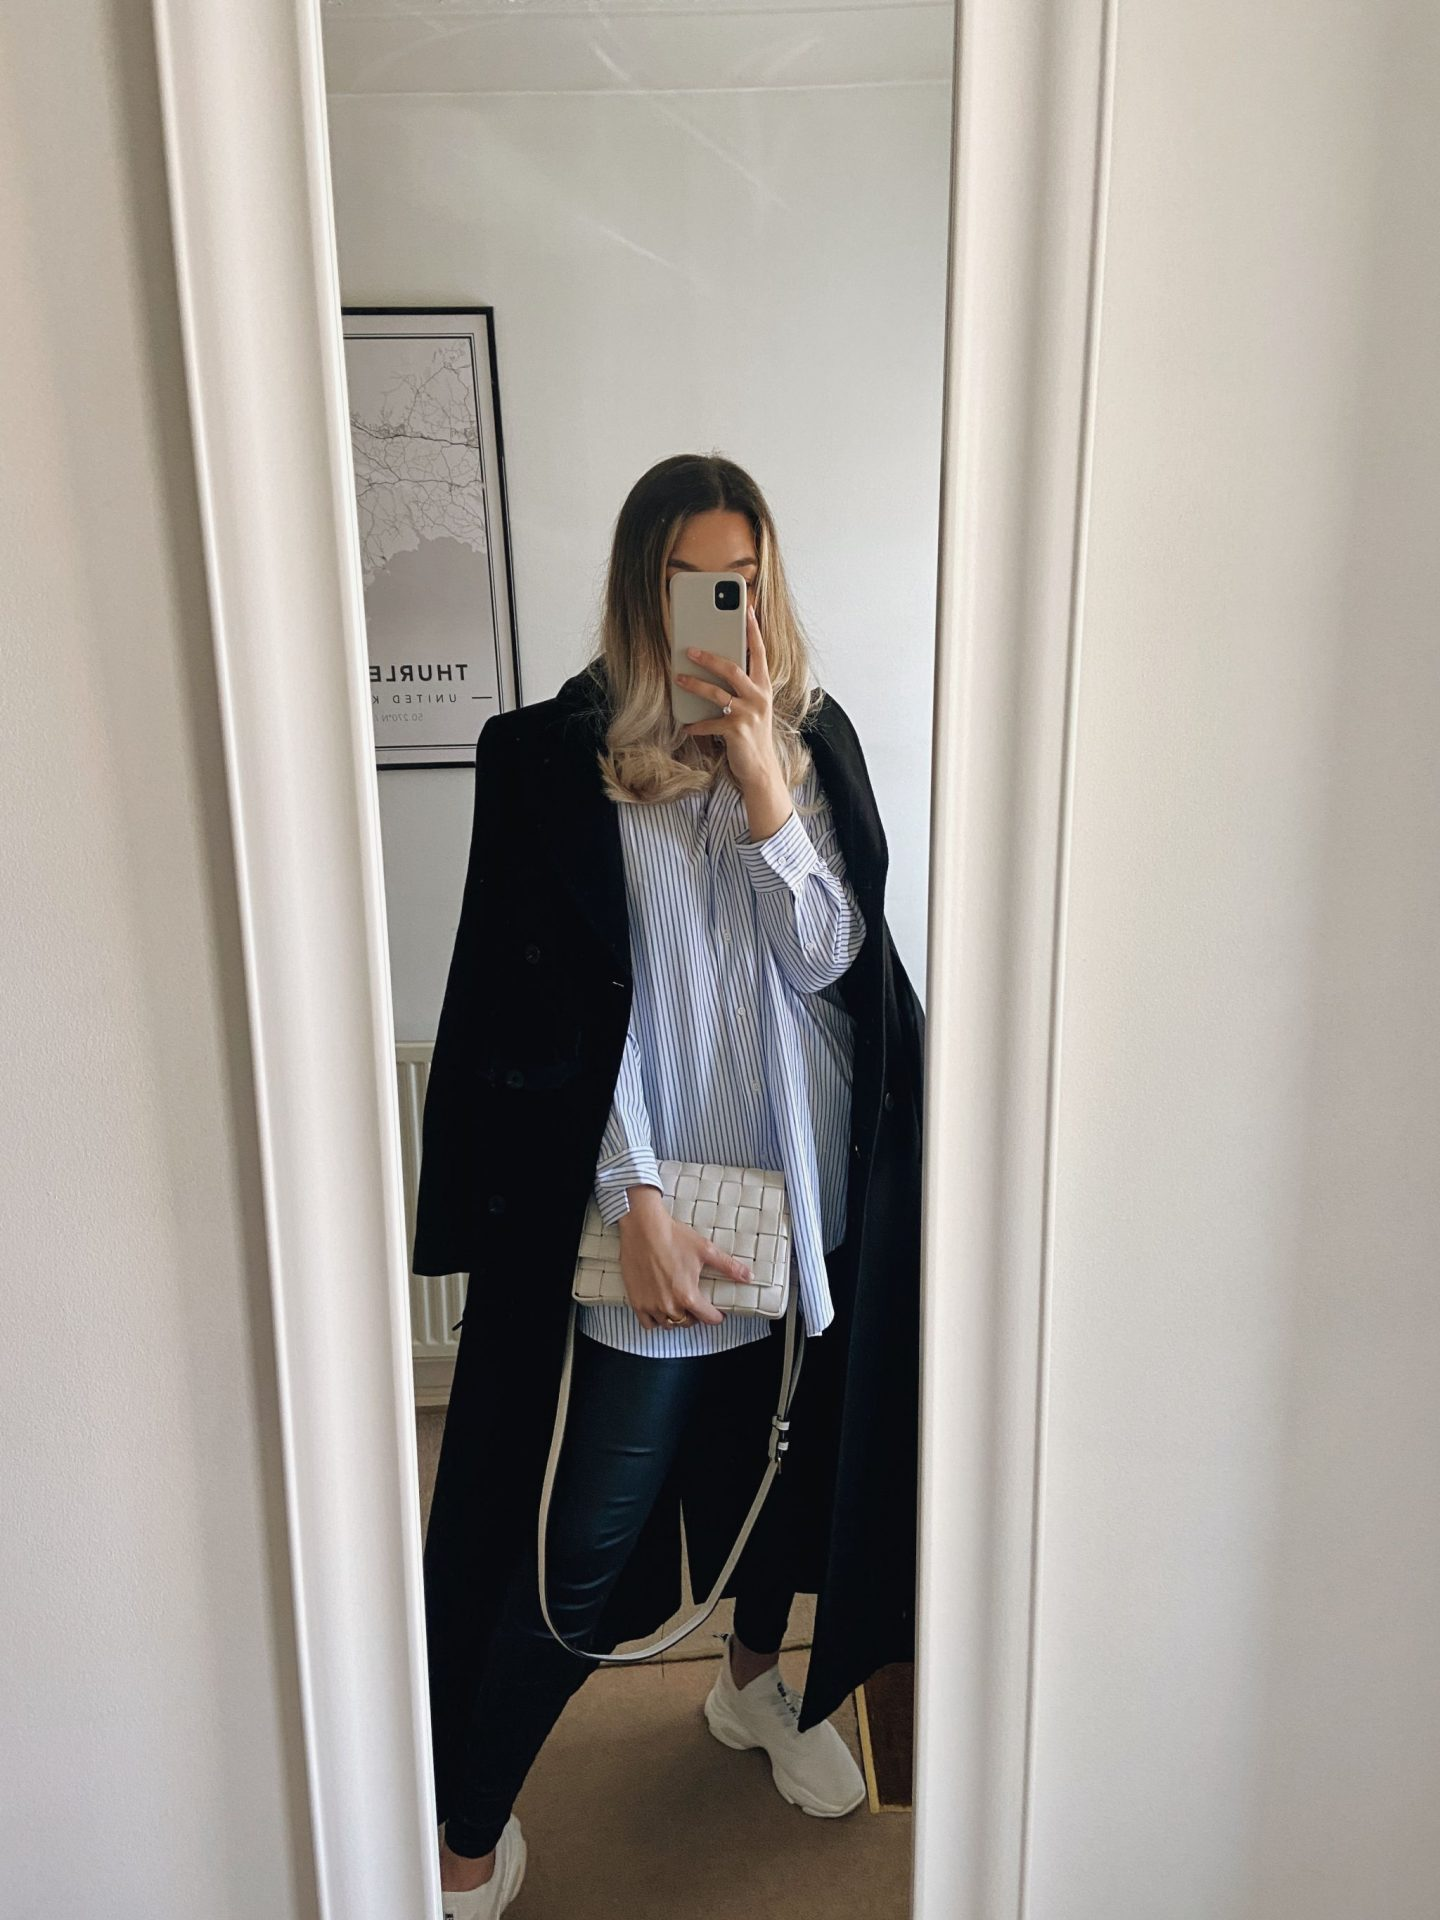 Gone are the days of spending £30 on ten items... here is why I want to invest into luxury fashion pieces...